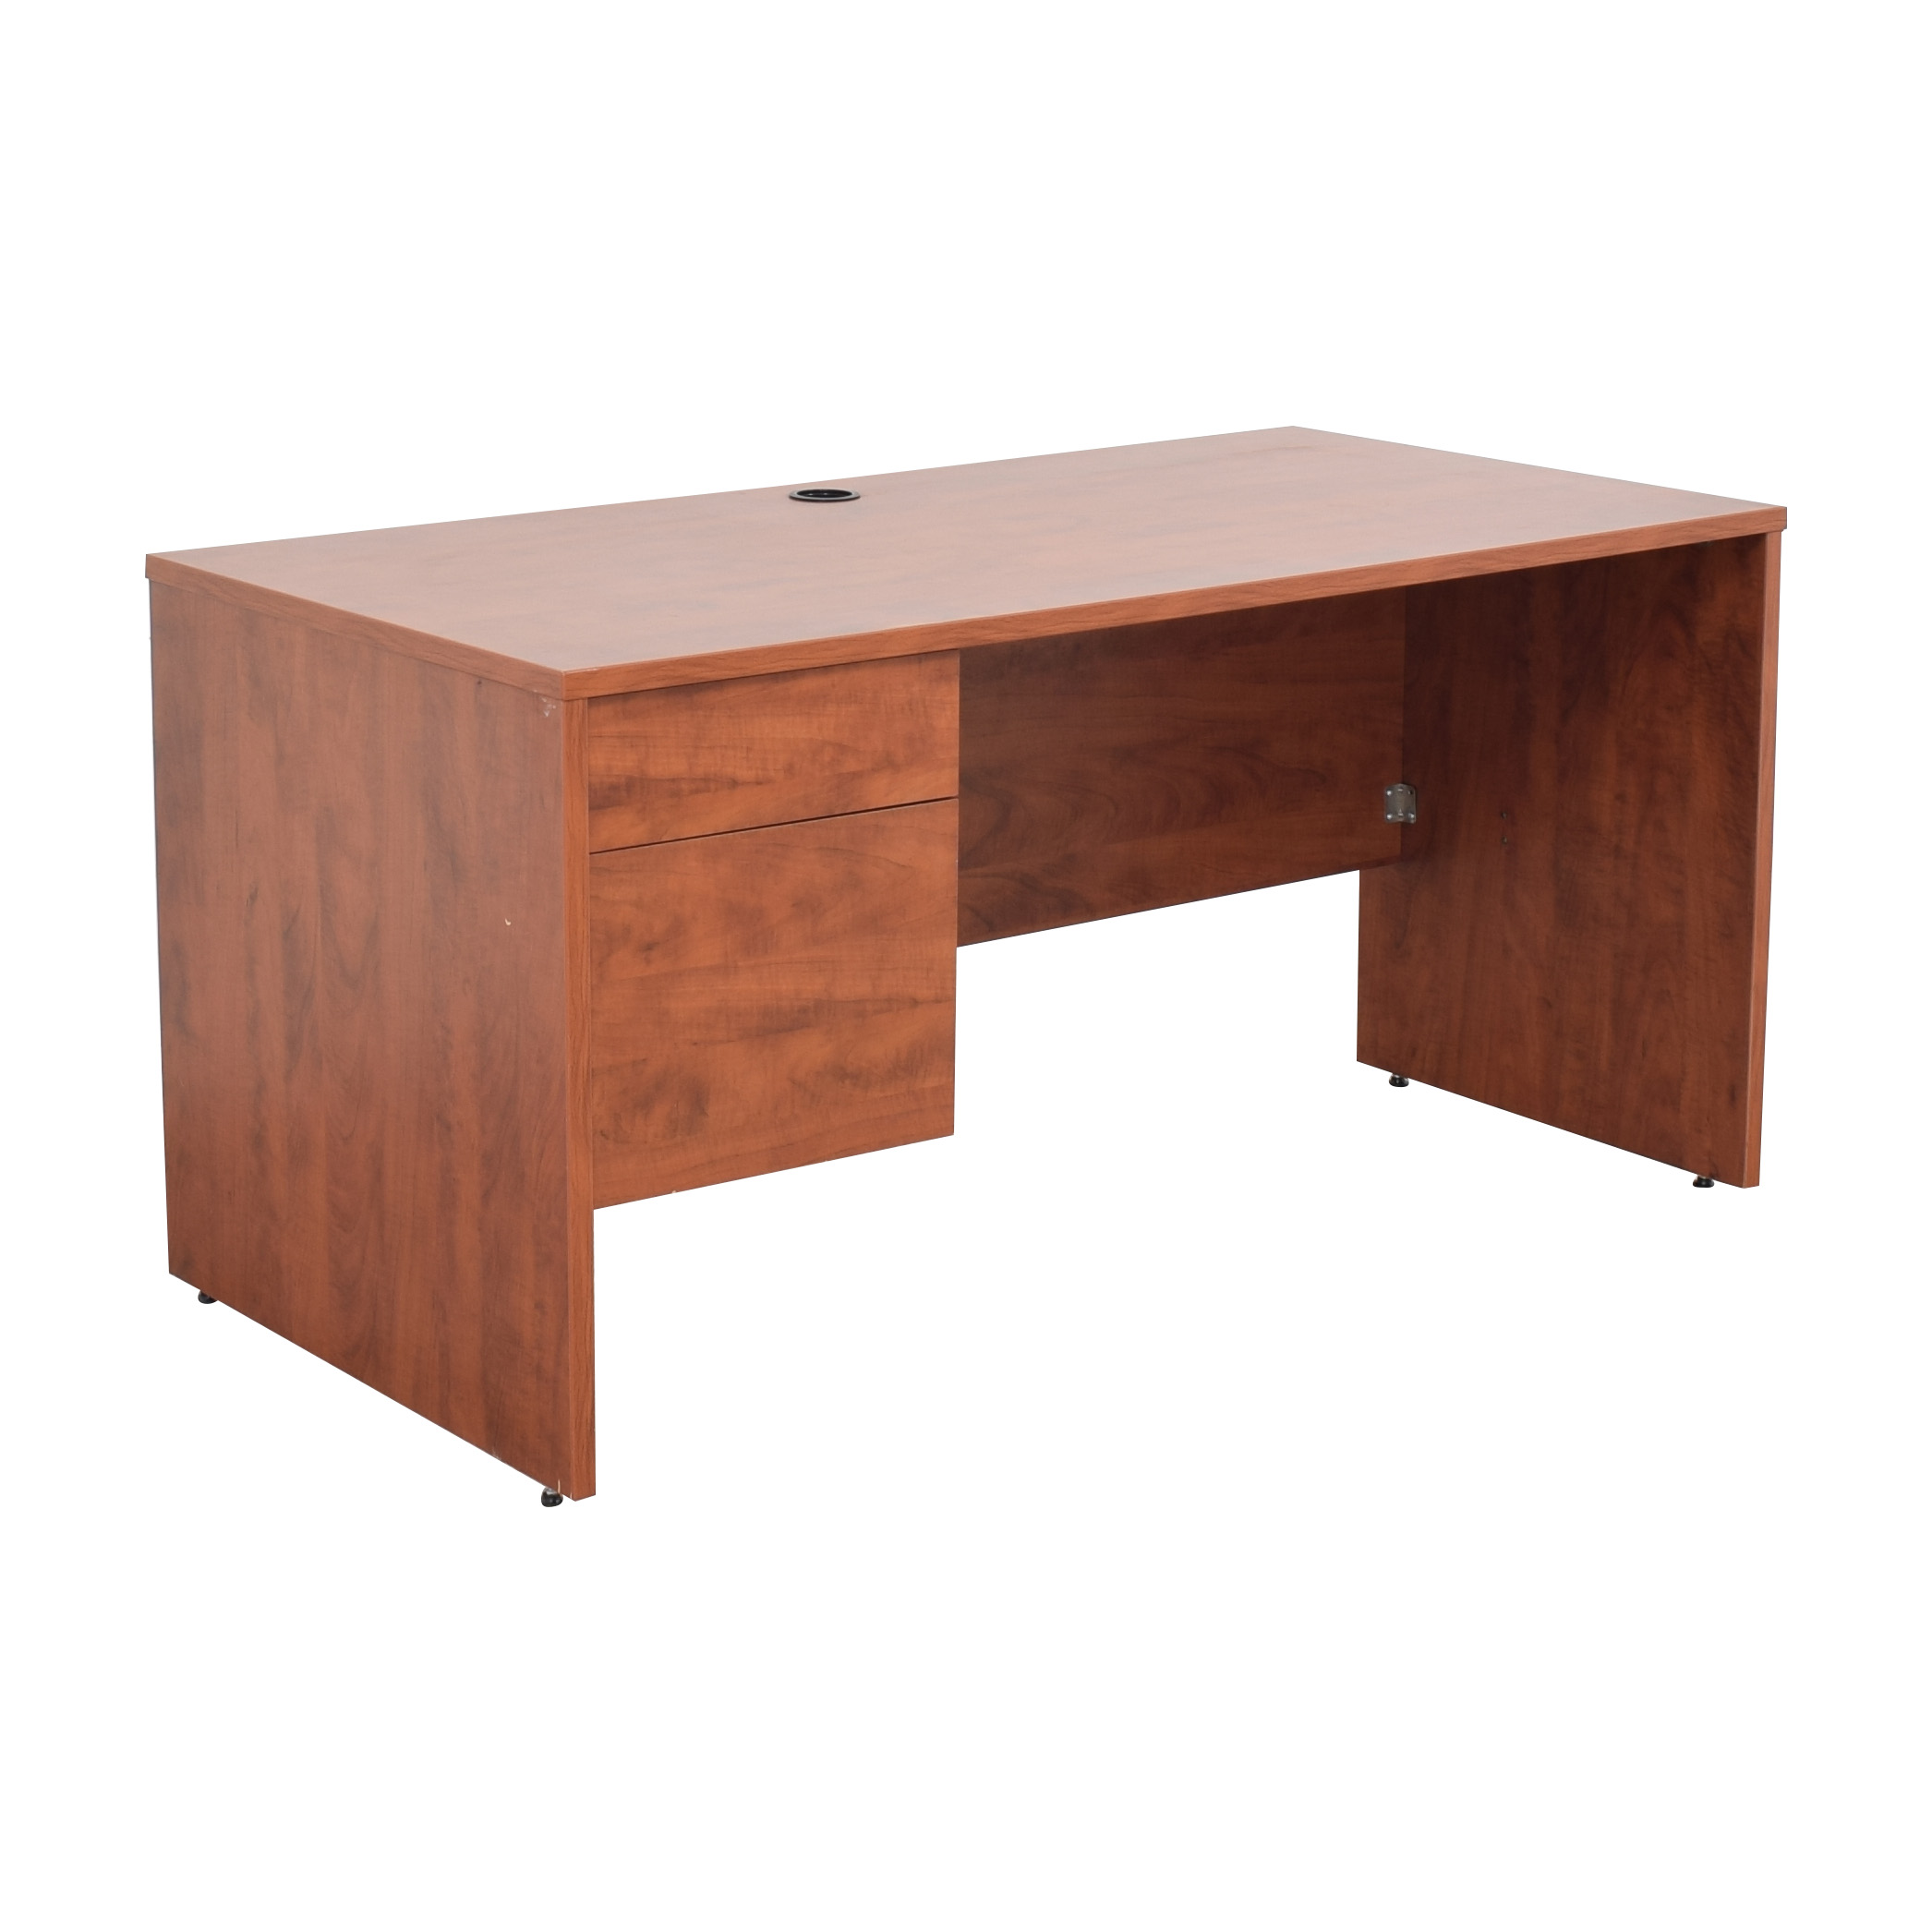 Glenwood Glenwood Desk with Two Drawers coupon